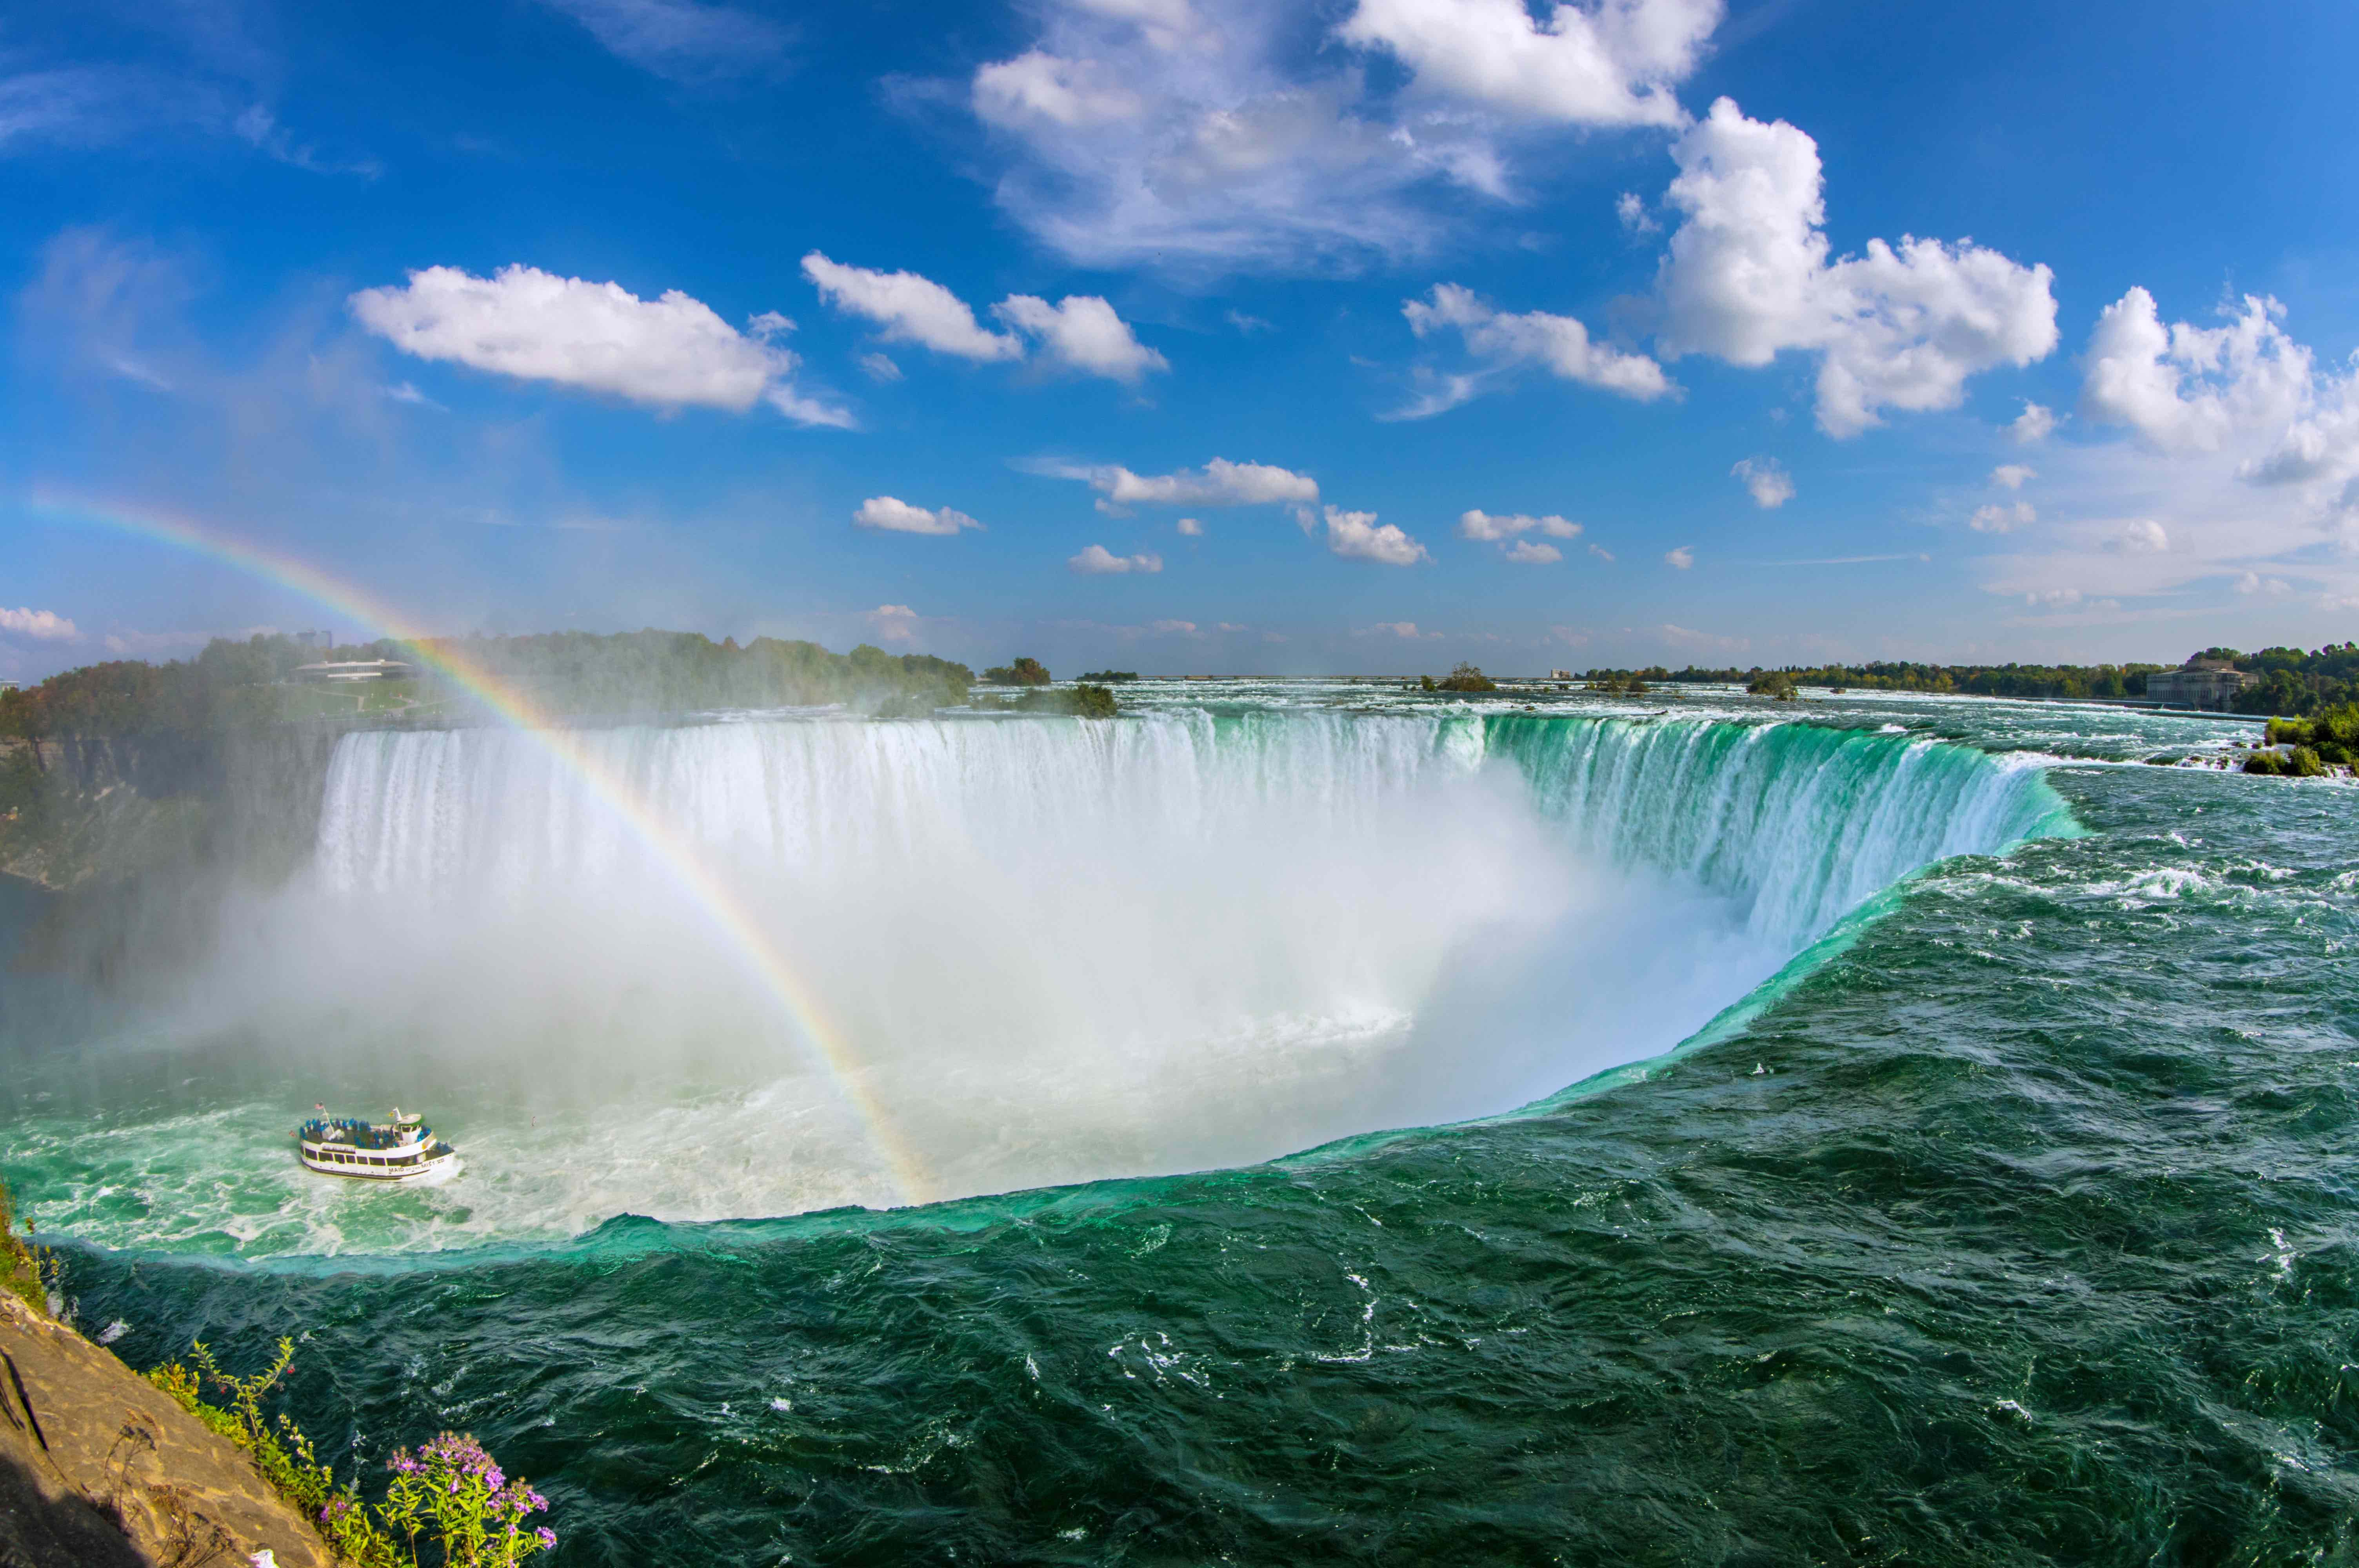 (Niagara Falls) Maid of the Mist Cruise (from the United States)